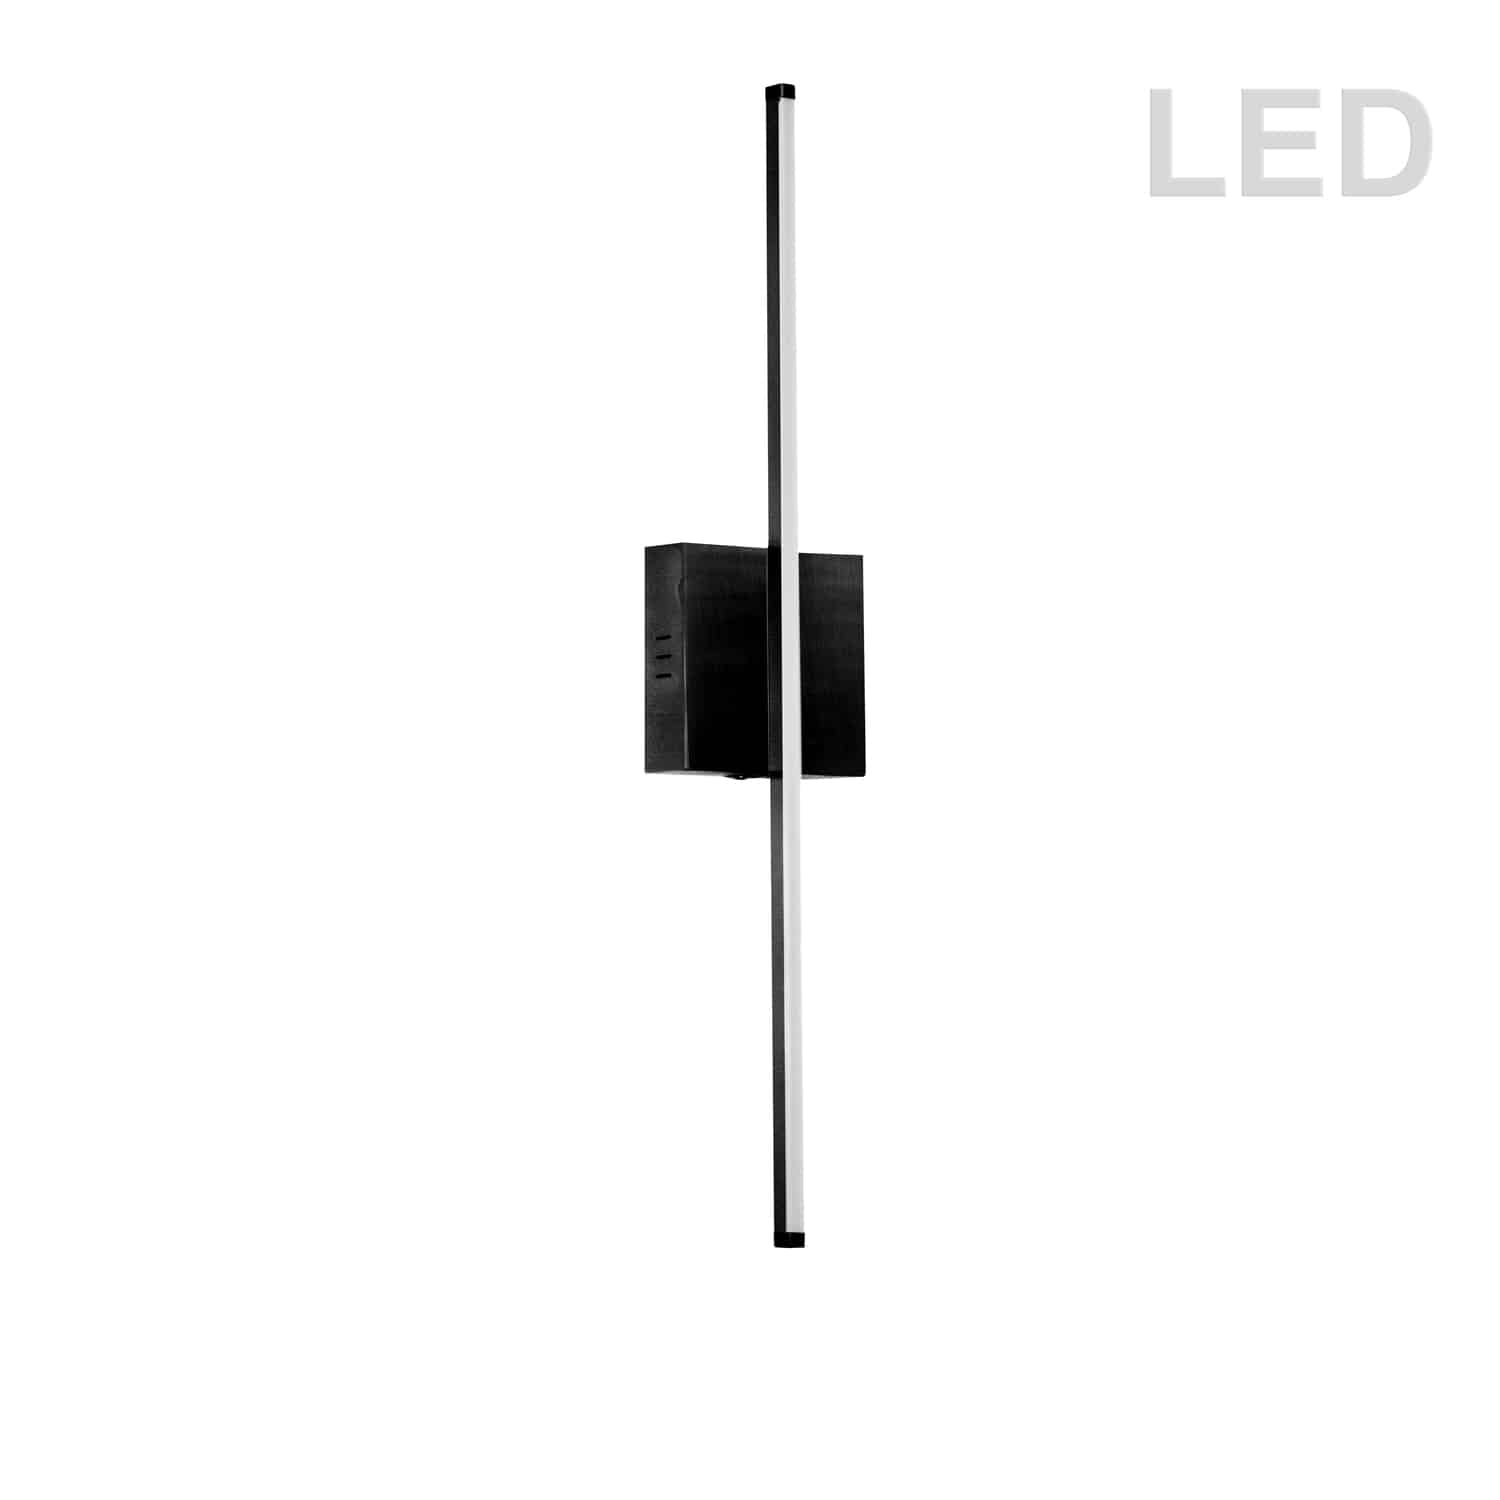 19W LED Wall Sconce, Matte Black with White Acrylic Diffuser